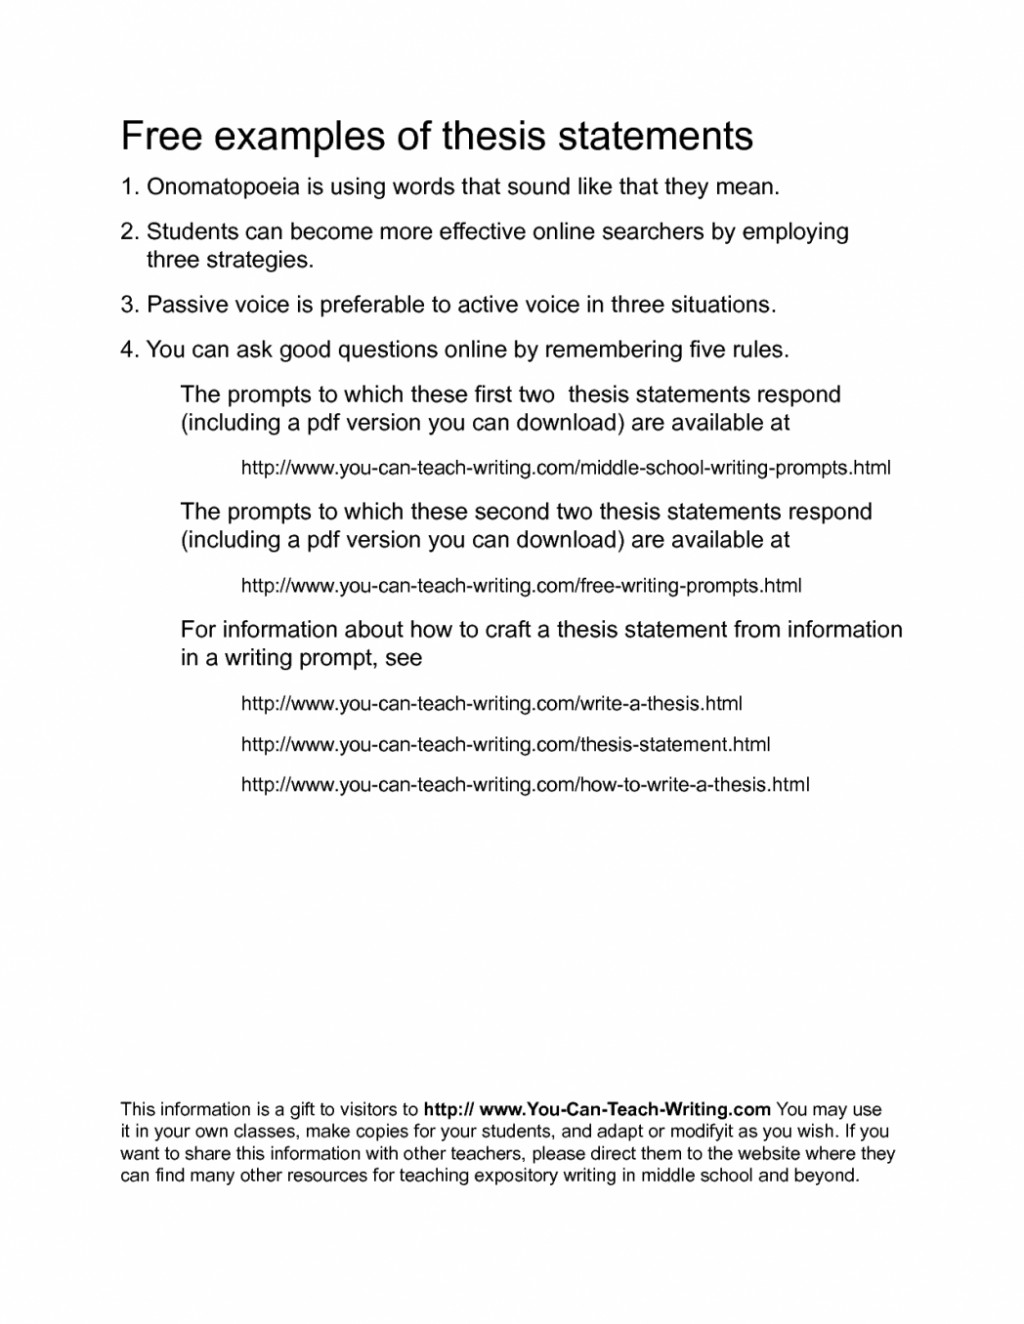 007 Persuasiveay Thesis Good Topics For Middle School About Purpose Of Statement Template Wwe Speech Uniforms Issues Education Rules Uniform Argumentative High 1048x1356 Exceptional Persuasive Essay Ideas Outline Large